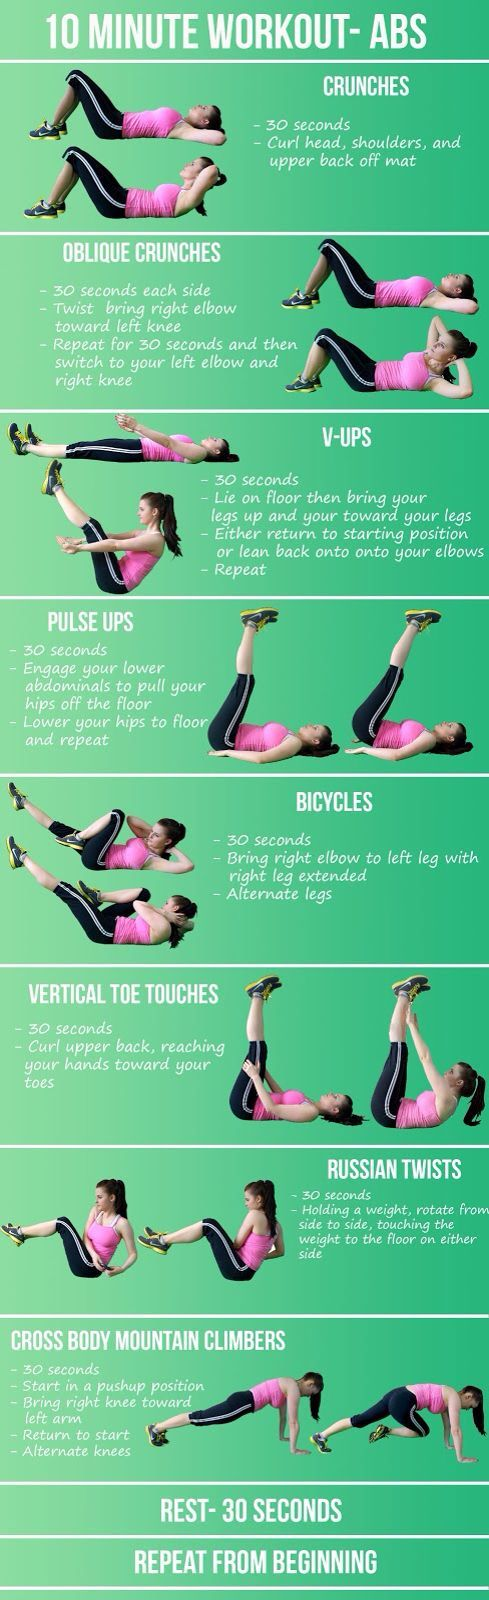 10 minute workout abs printable to blast off that tummy! LIKE US ON FACEBOOK! www.facebook.com/teamgothedistance